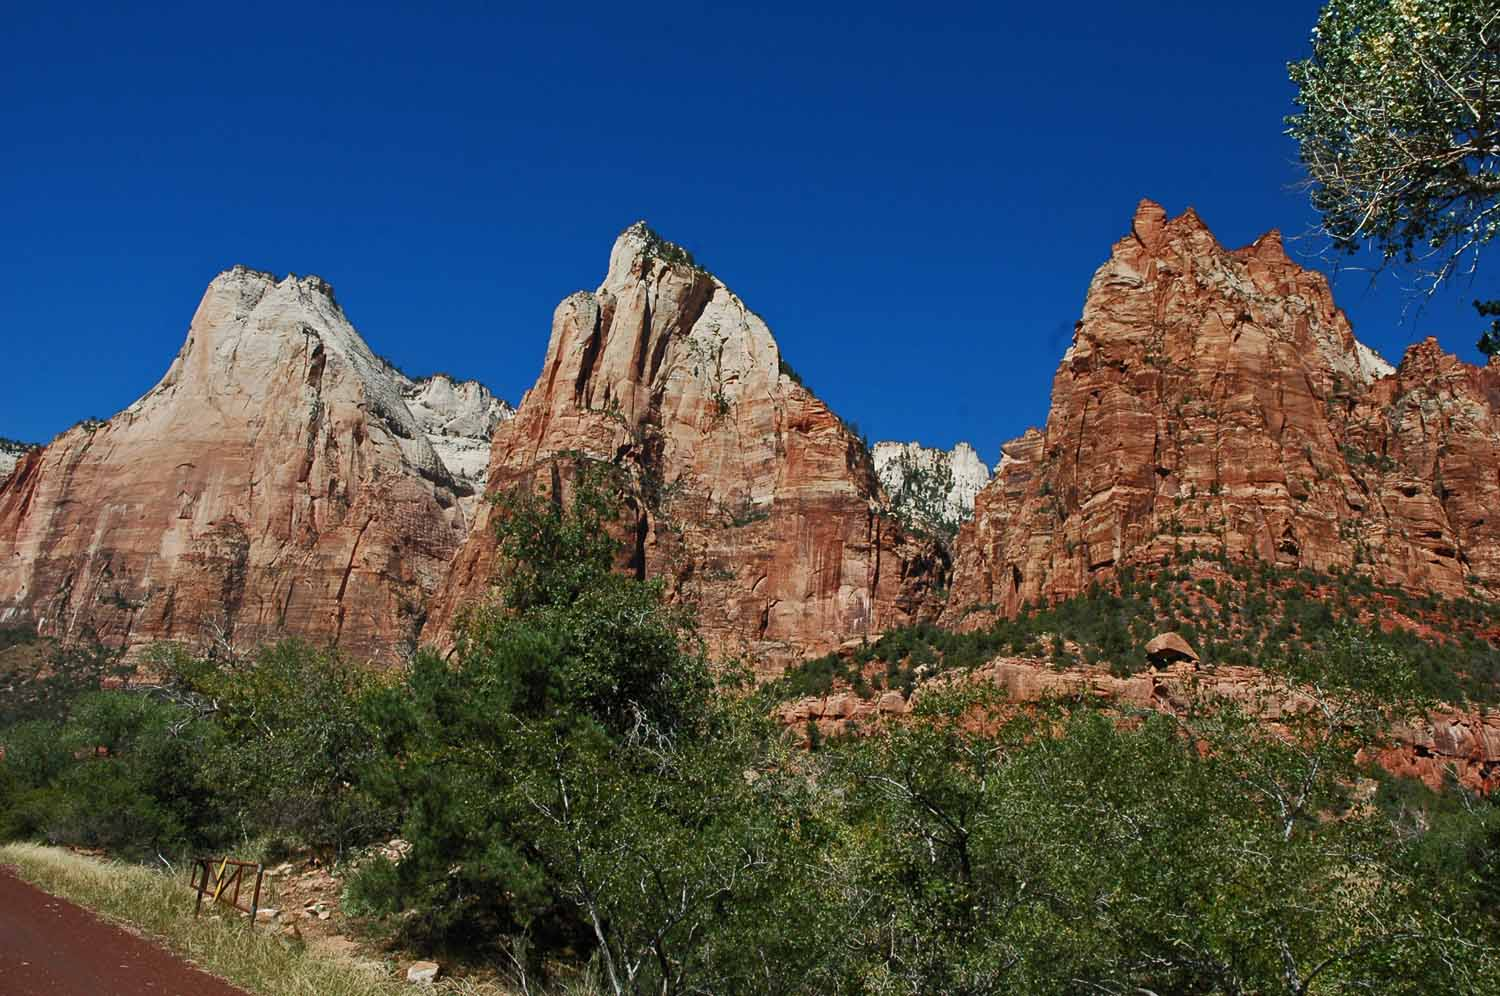 Zion National Park Patriarchs;  The peaks of Abraham - Isaac - Jacob.  Yes there is a story